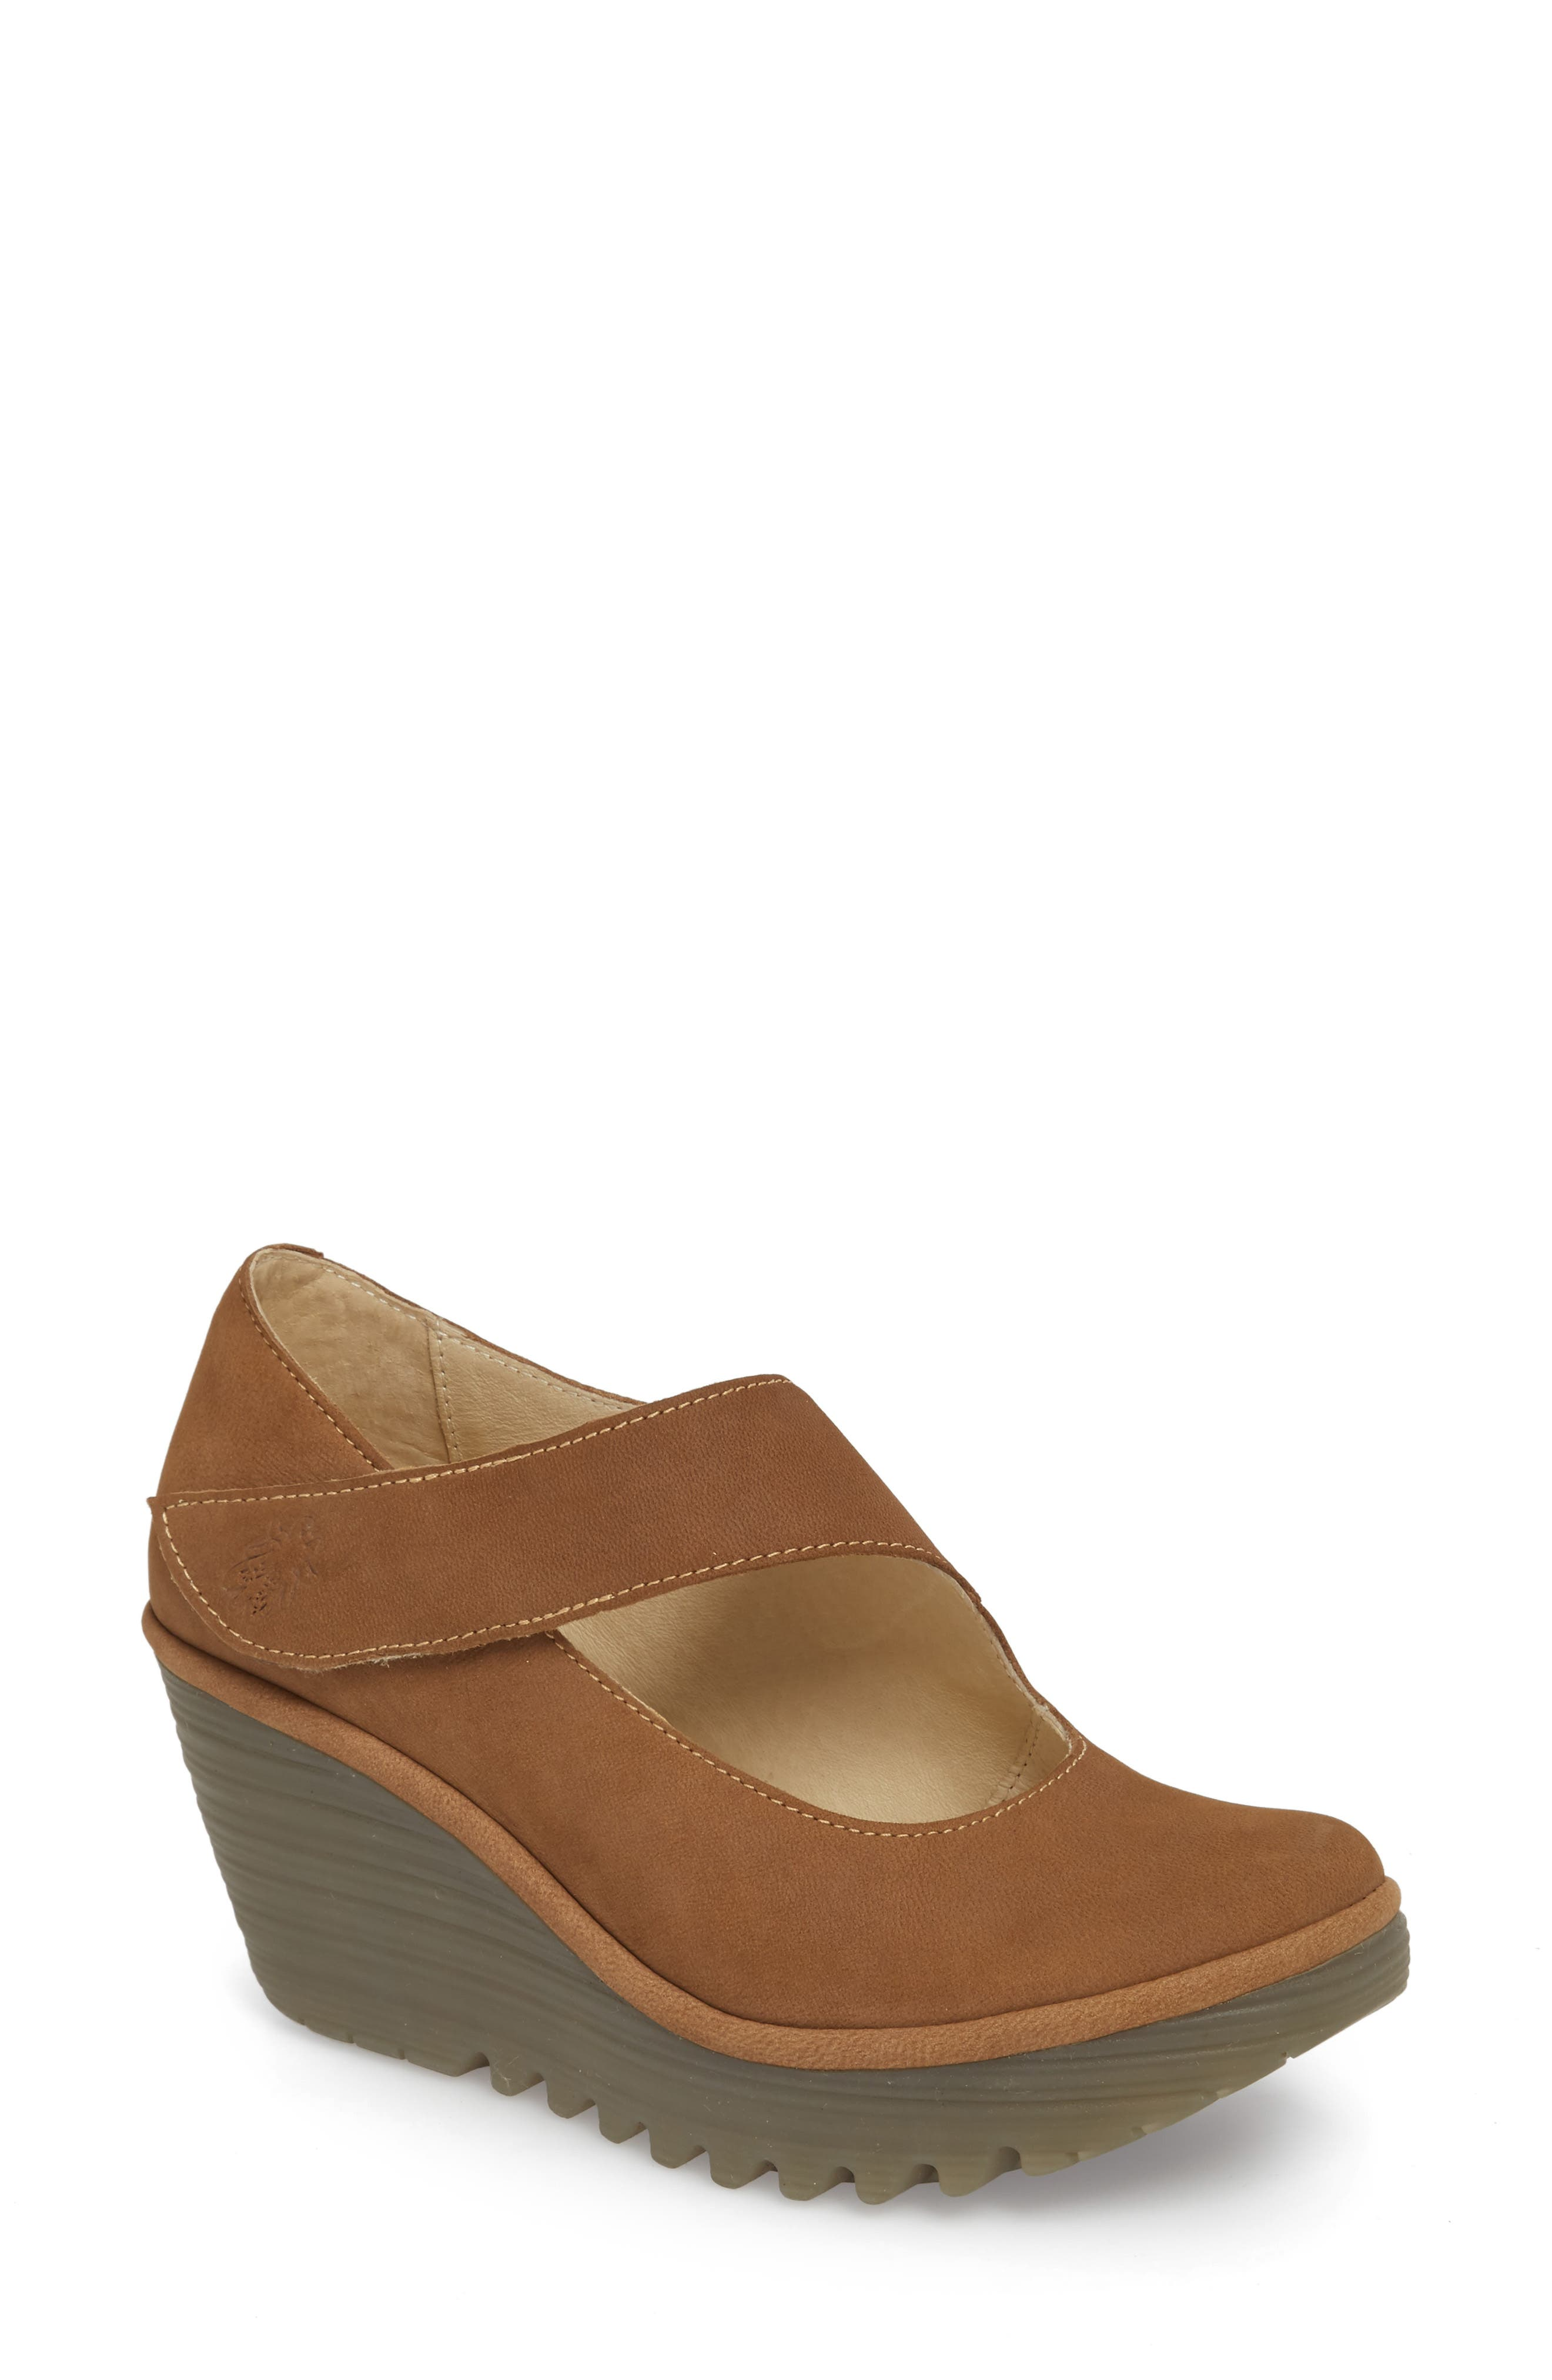 'Yasi' Wedge Pump,                             Main thumbnail 1, color,                             Sand Cupido Leather